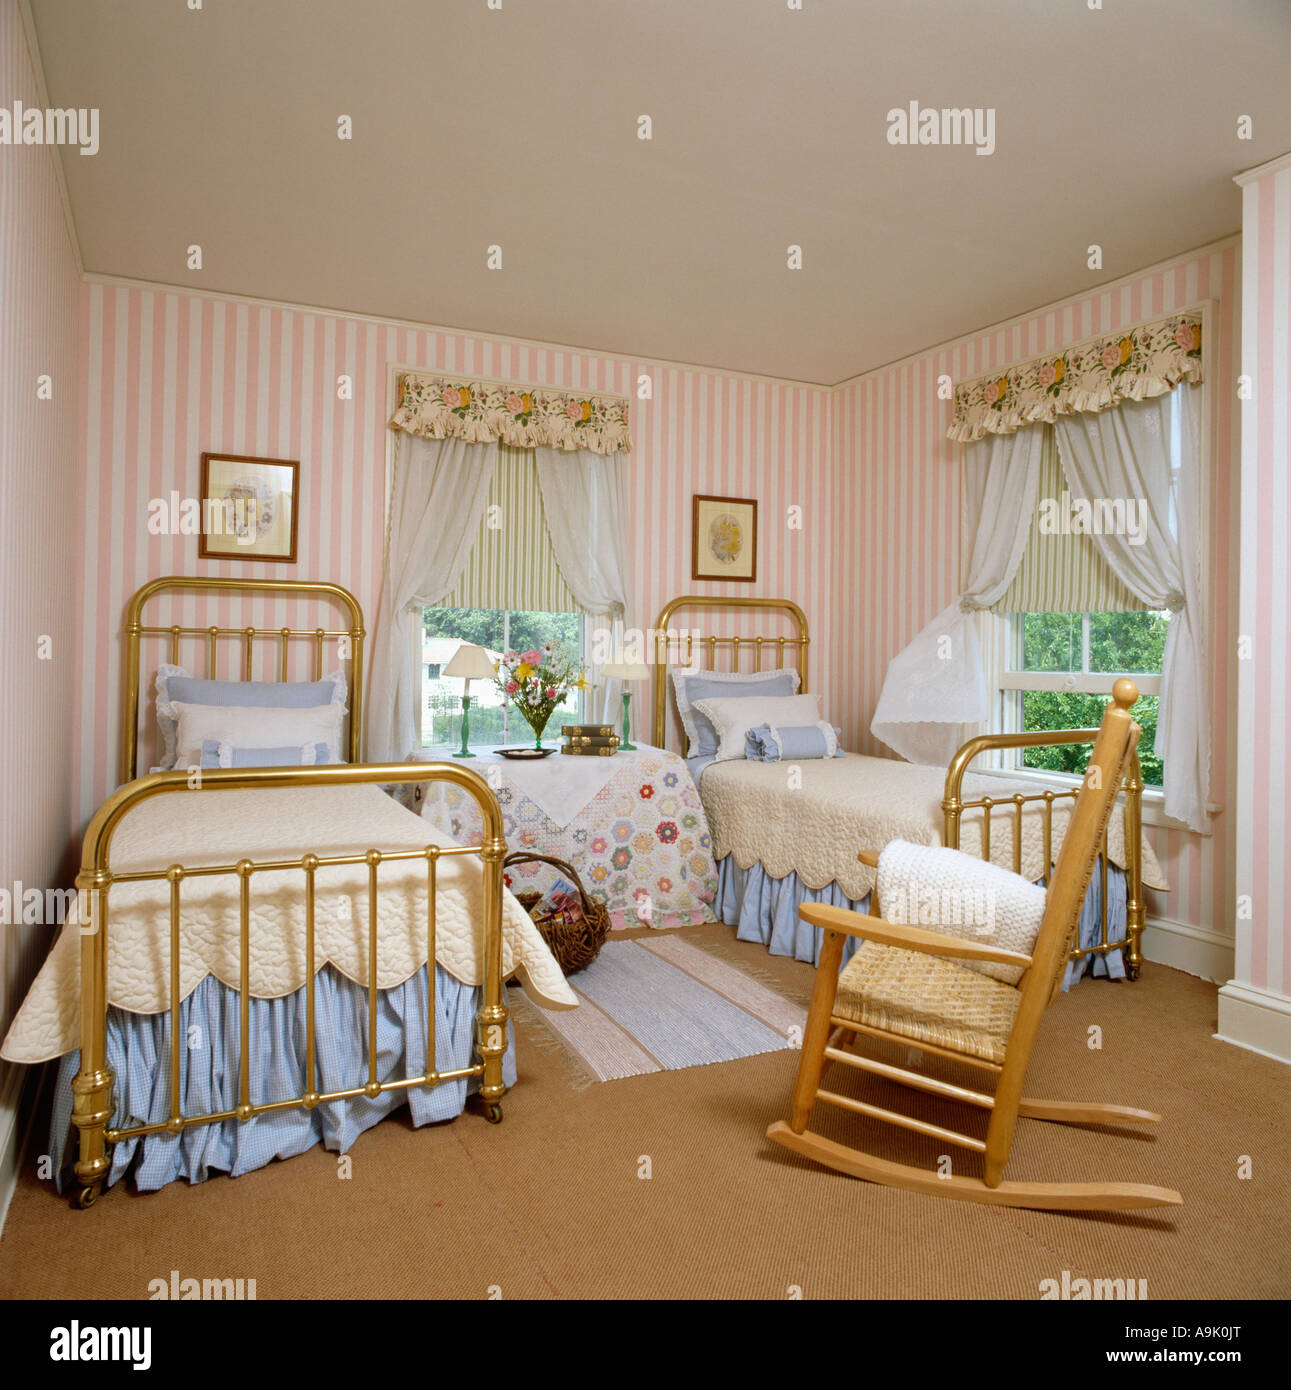 Rockingchair And Twin Beds With Brass Bedsteads In Bedroom With Pink